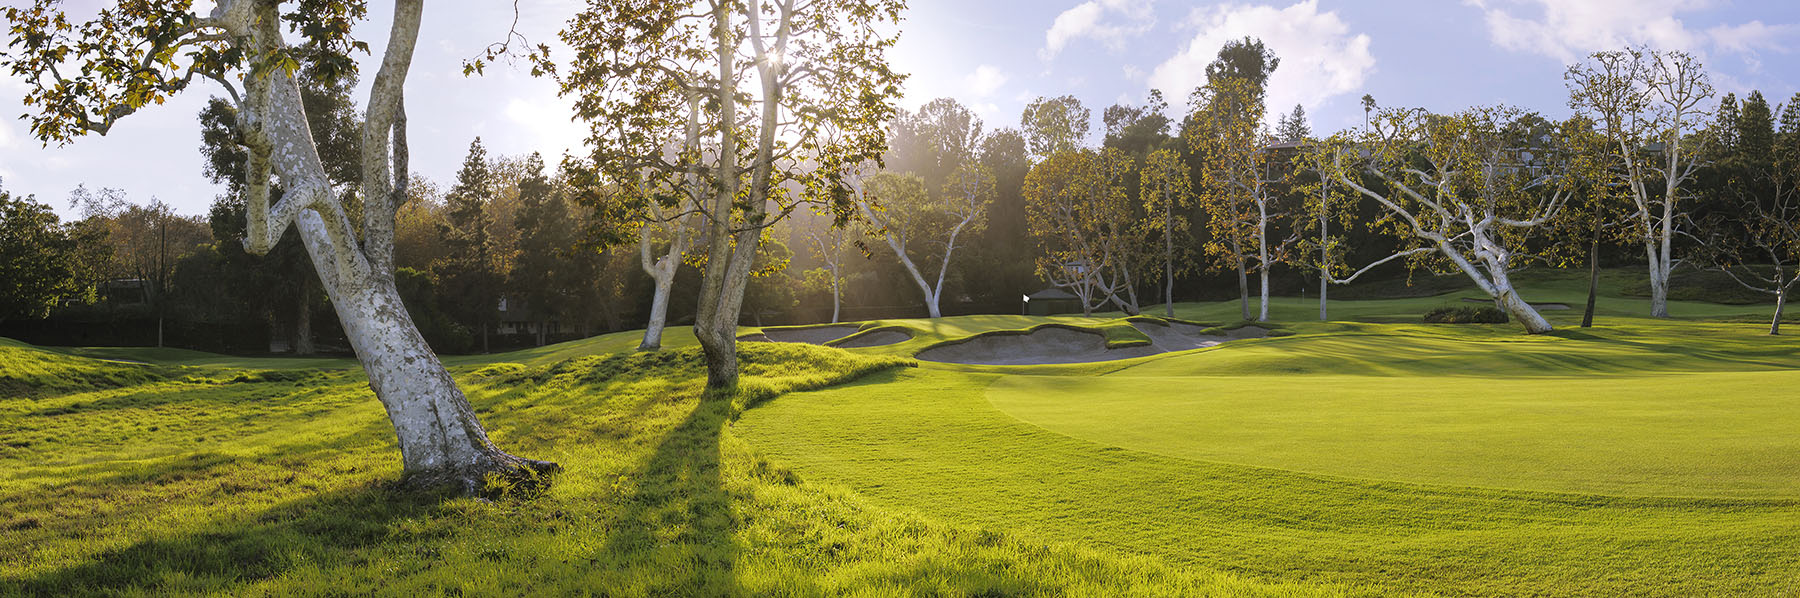 Golf Course Image - Riviera Country Club No. 16